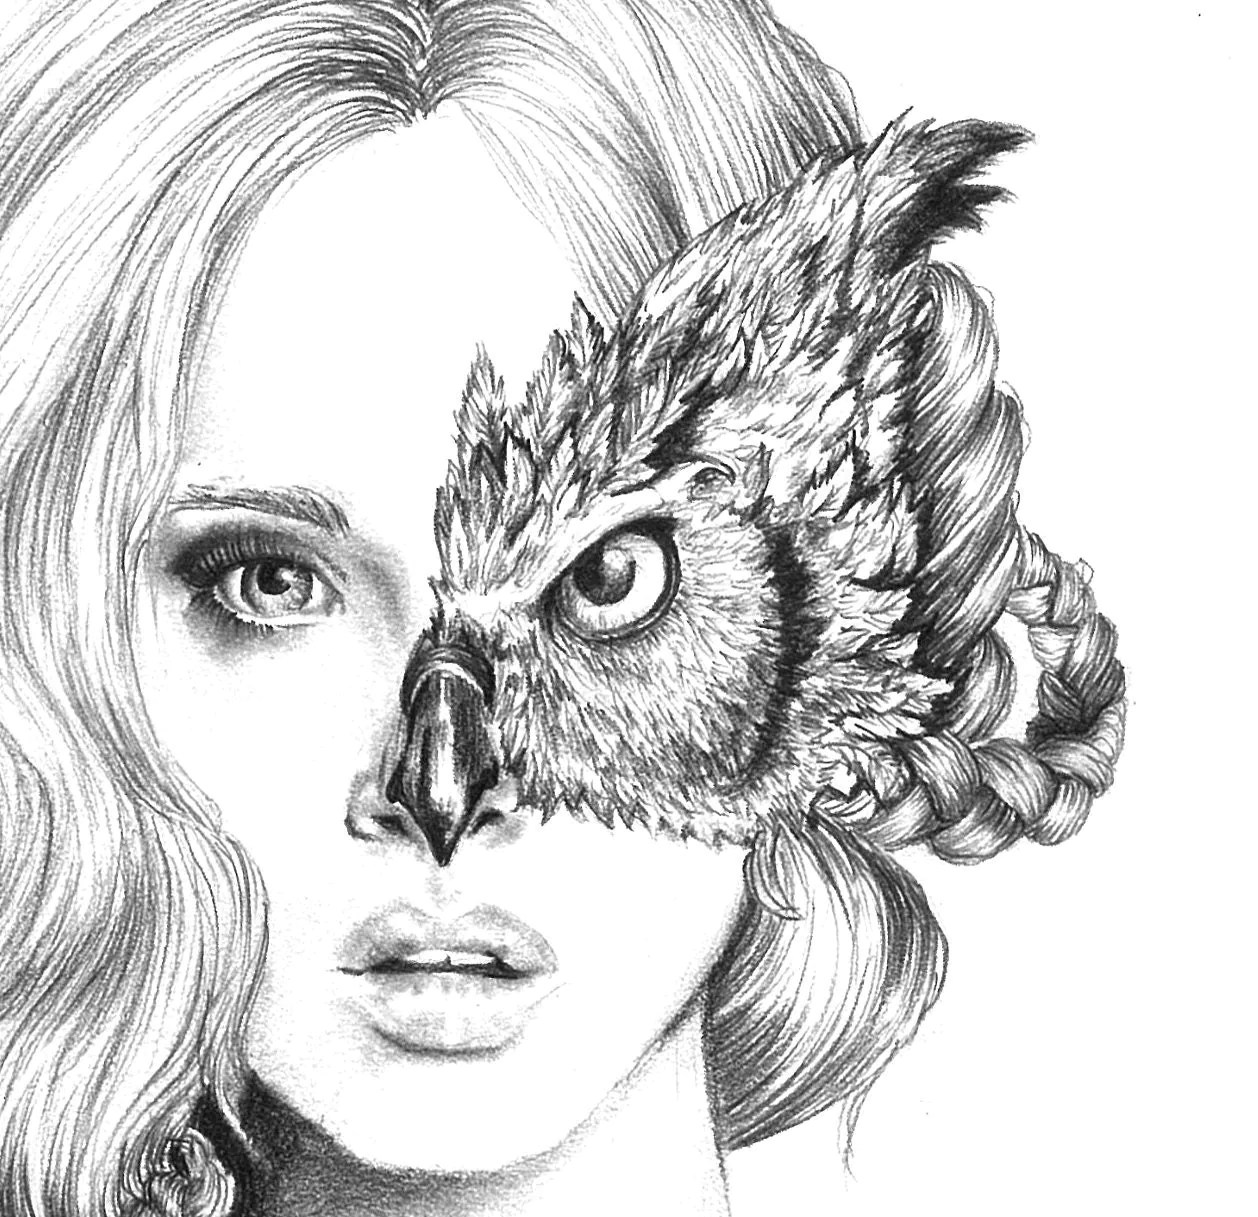 Iris Illustration Owl Mask Black And White 8x10 Signed